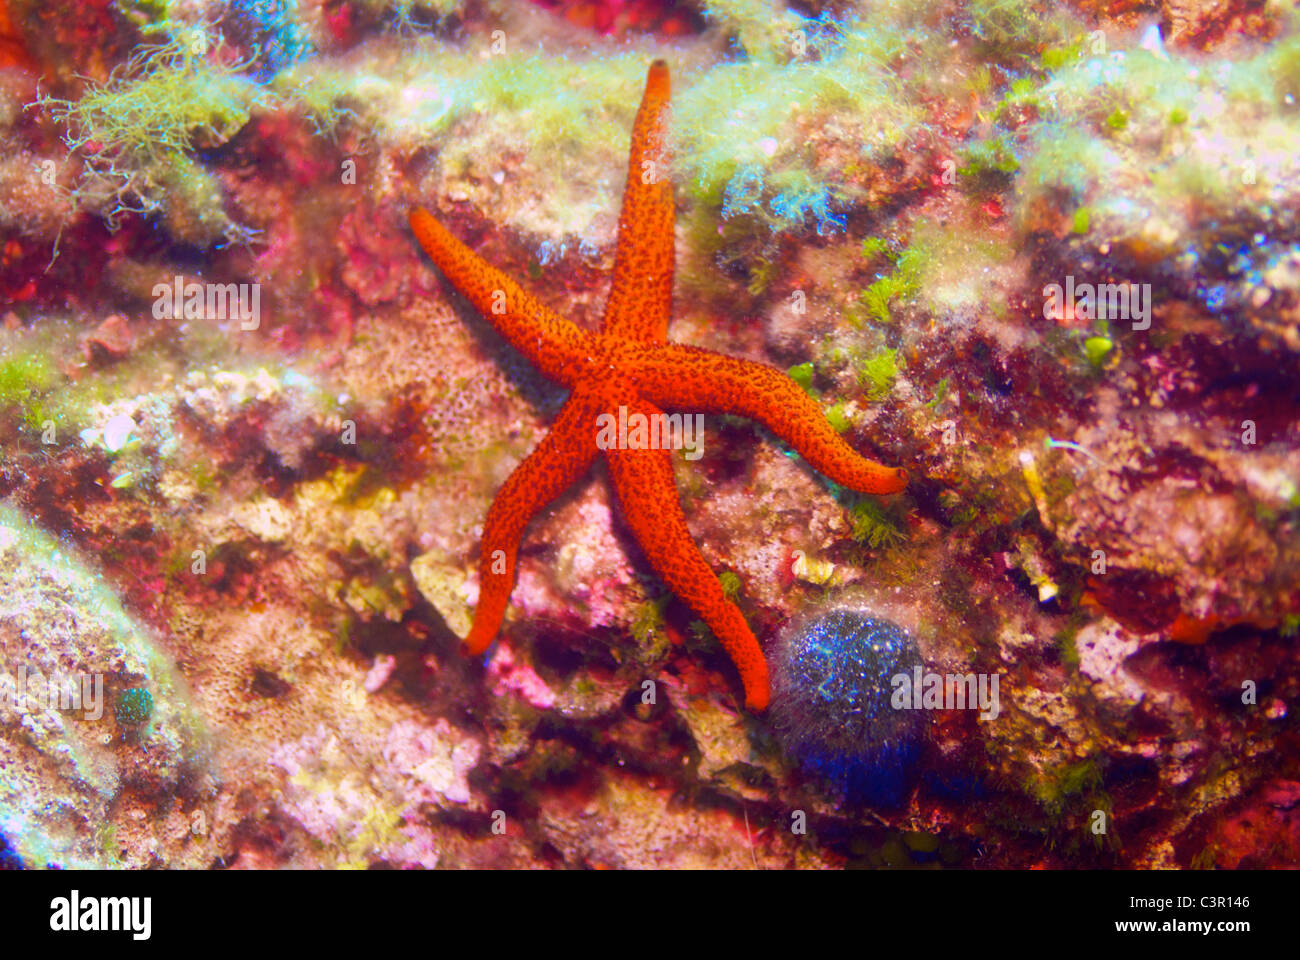 Seastar, scuba diving, underwaterphotography, Vela Luka, Croazia. Immagini Stock